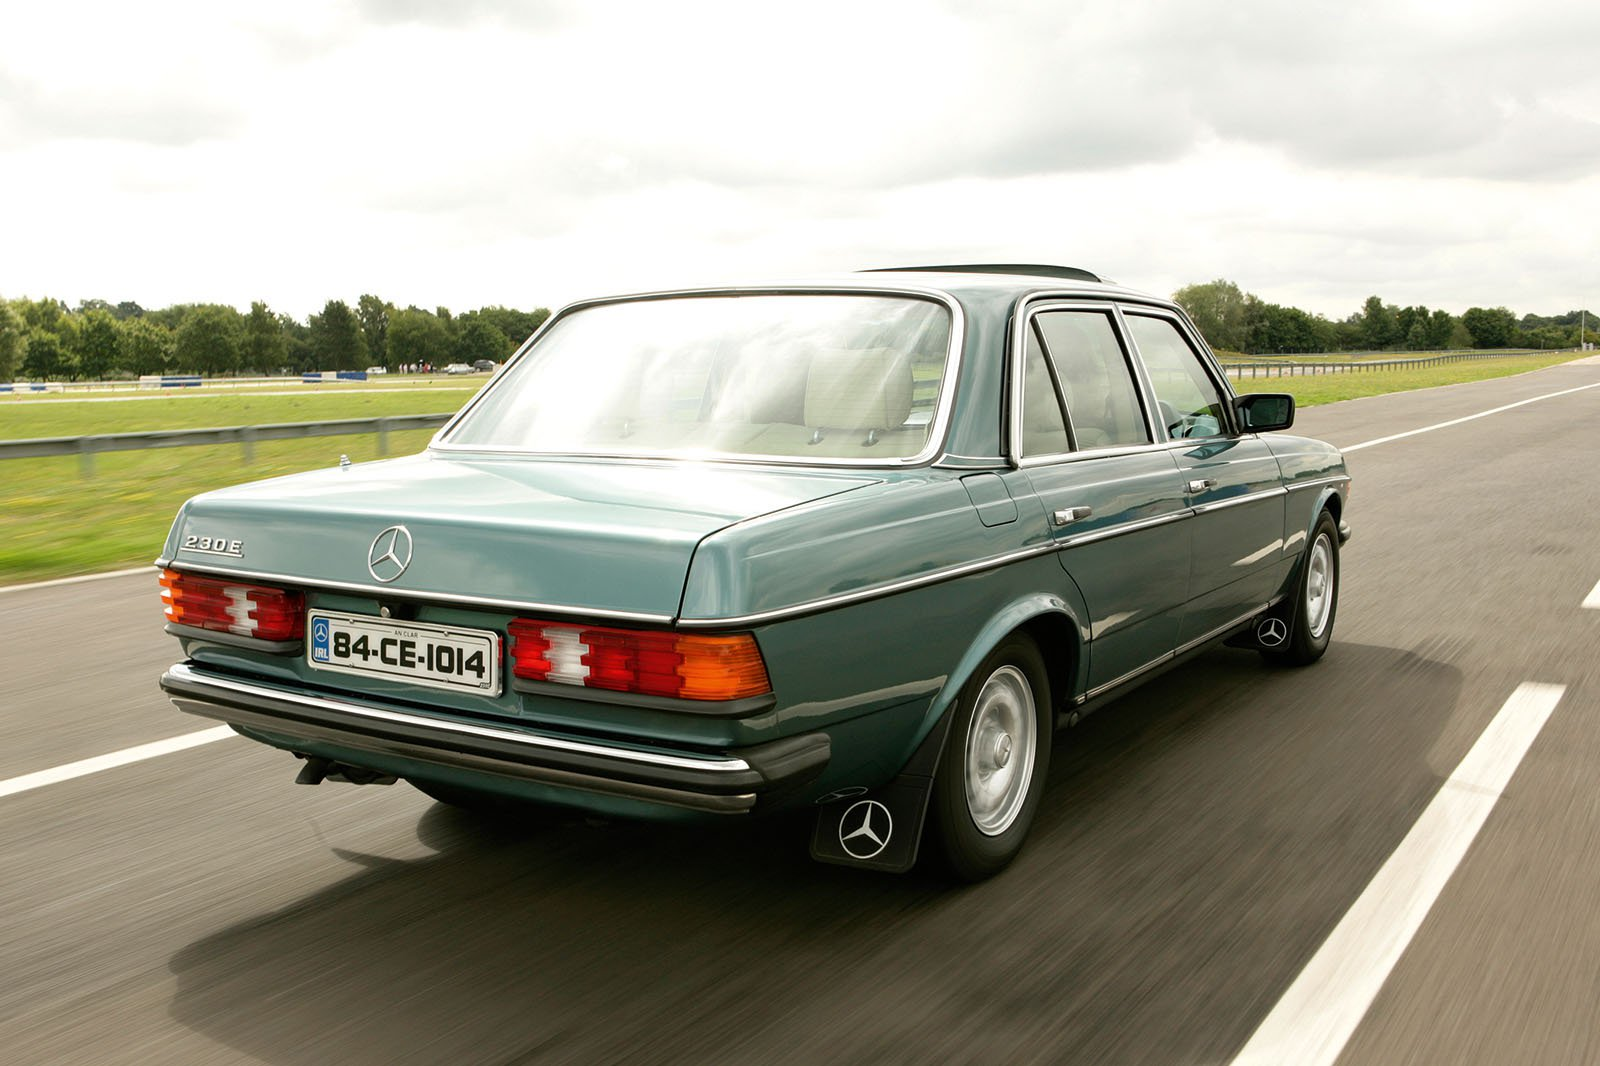 Mercedes W123 saloon